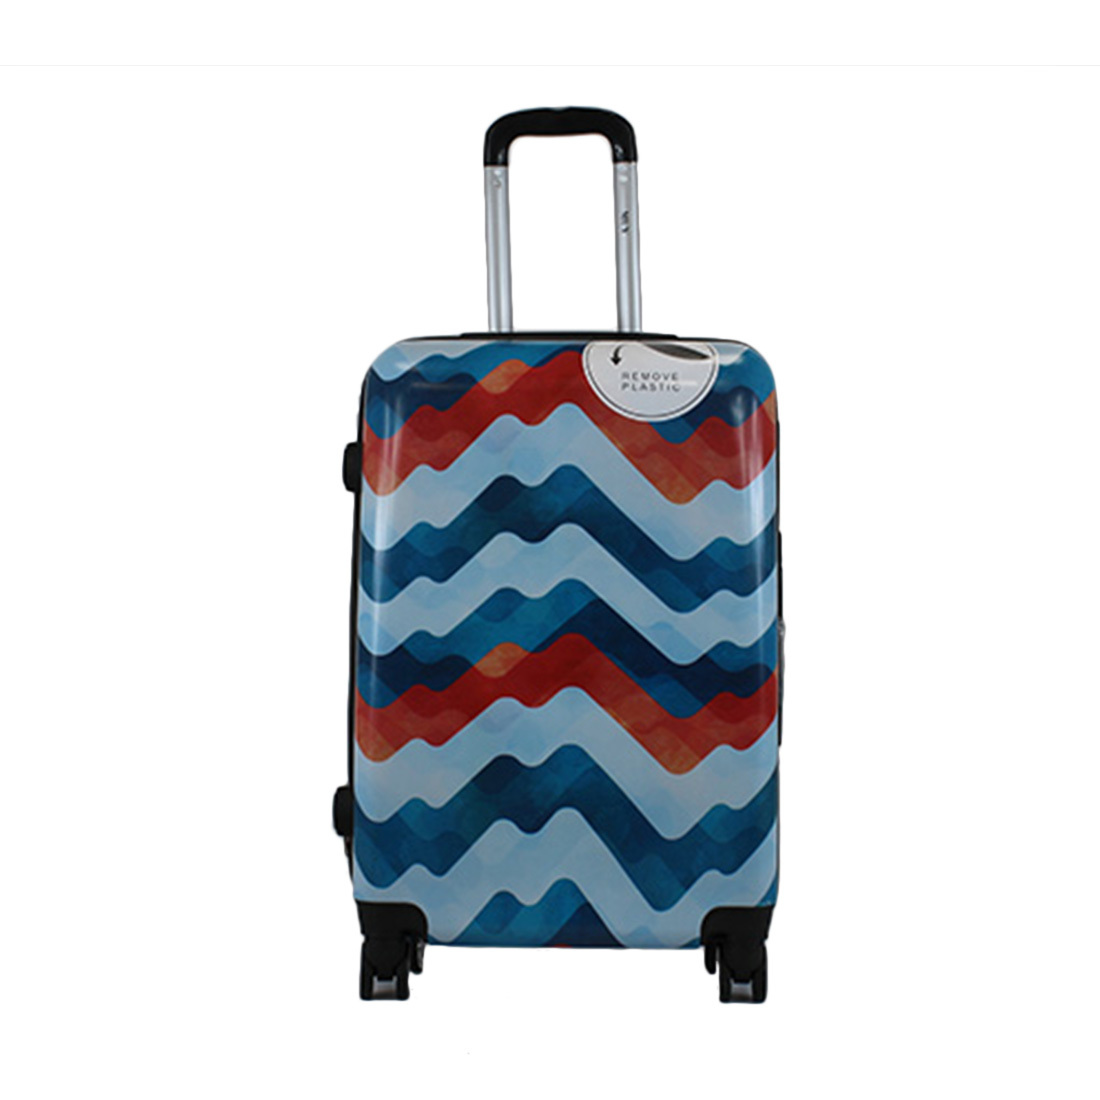 Hardside spinner waves colors print luggage